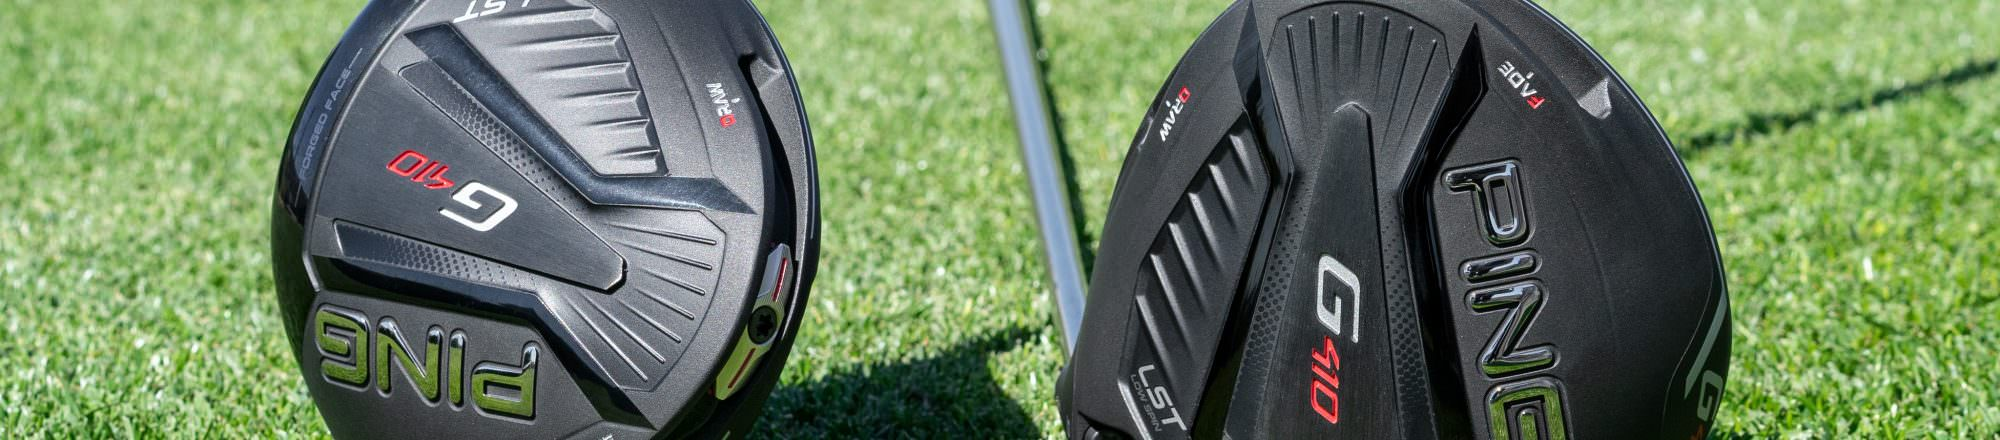 Is the Ping G410 LST driver for you?